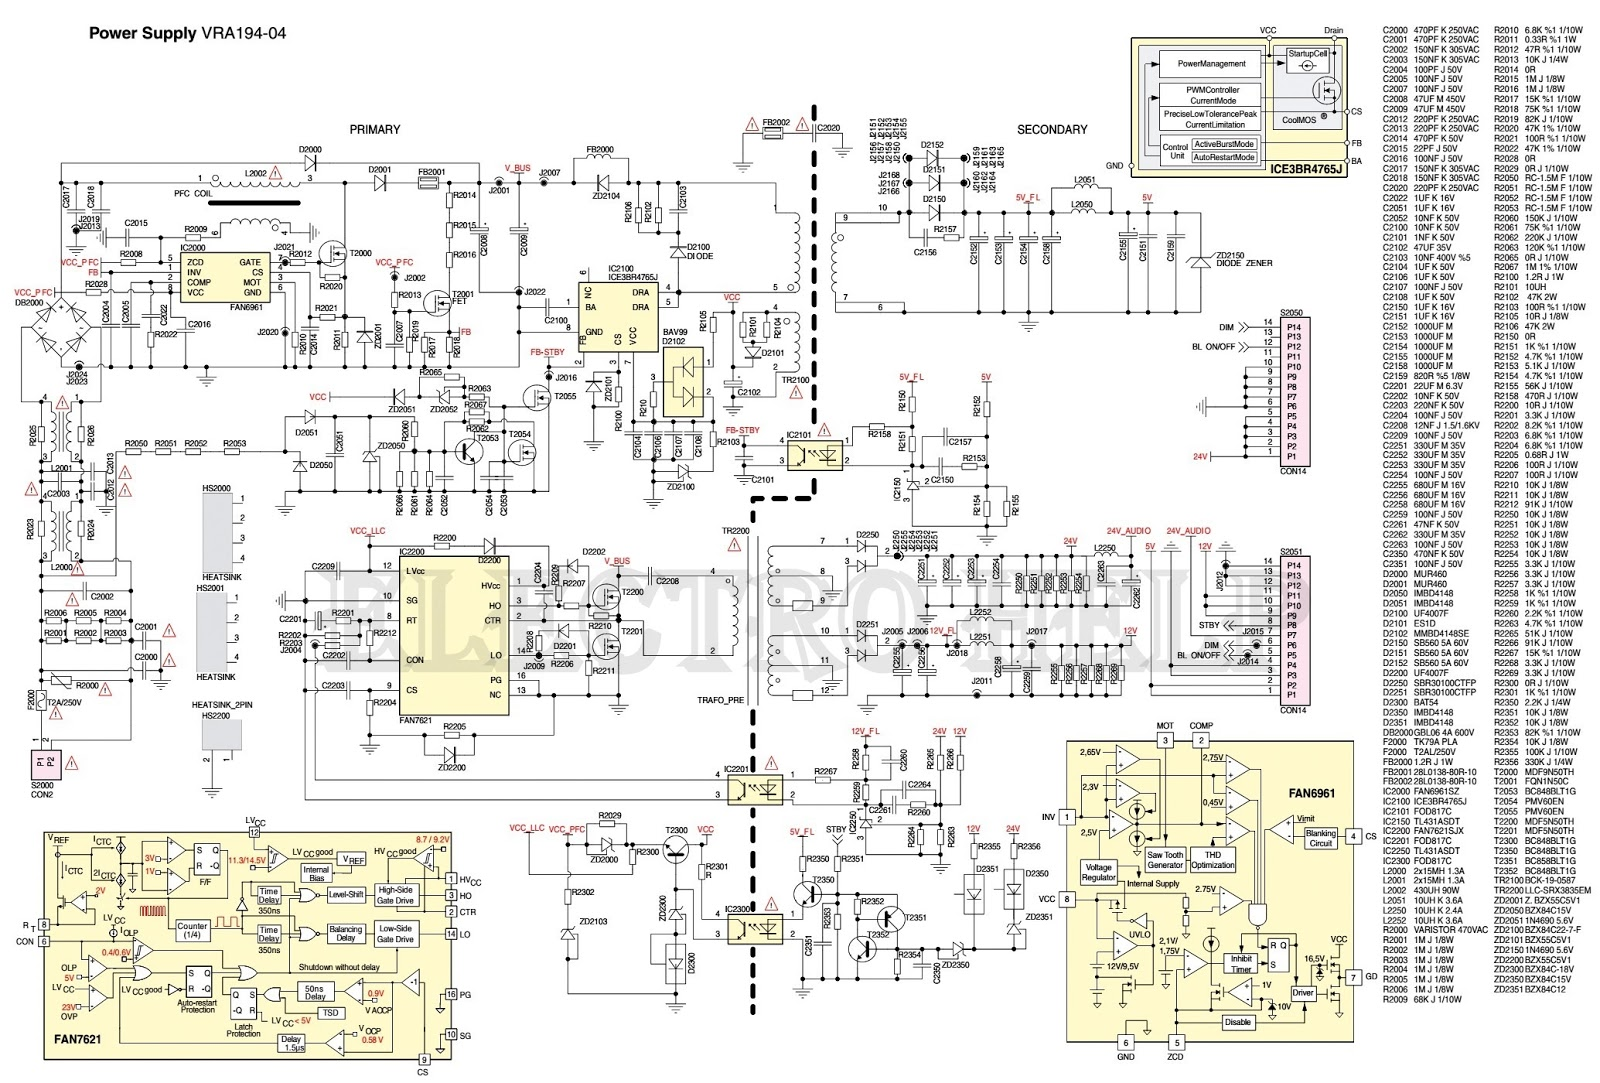 medium resolution of lcd tv power supply circuit diagram book diagram schema switch mode power supply circuit diagram also samsung microwave wiring